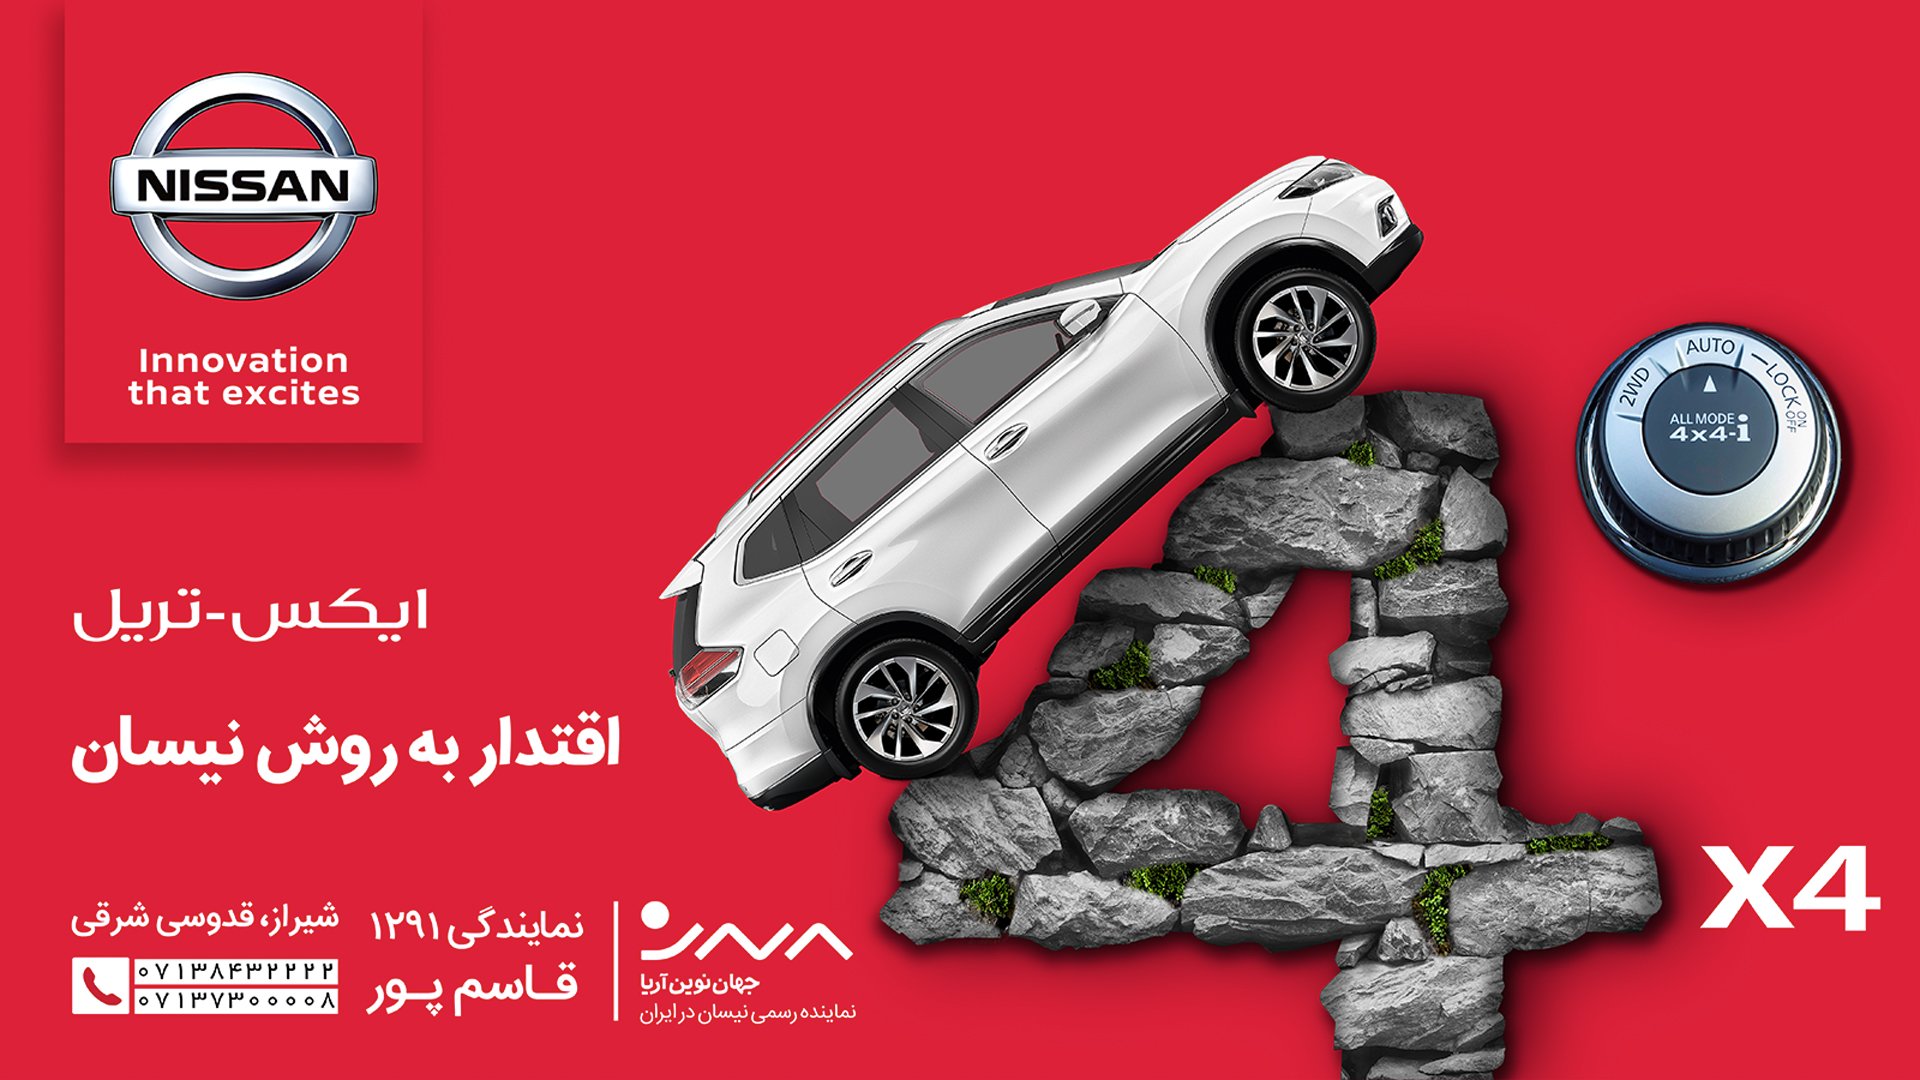 Nissan-campaign-billboard-design